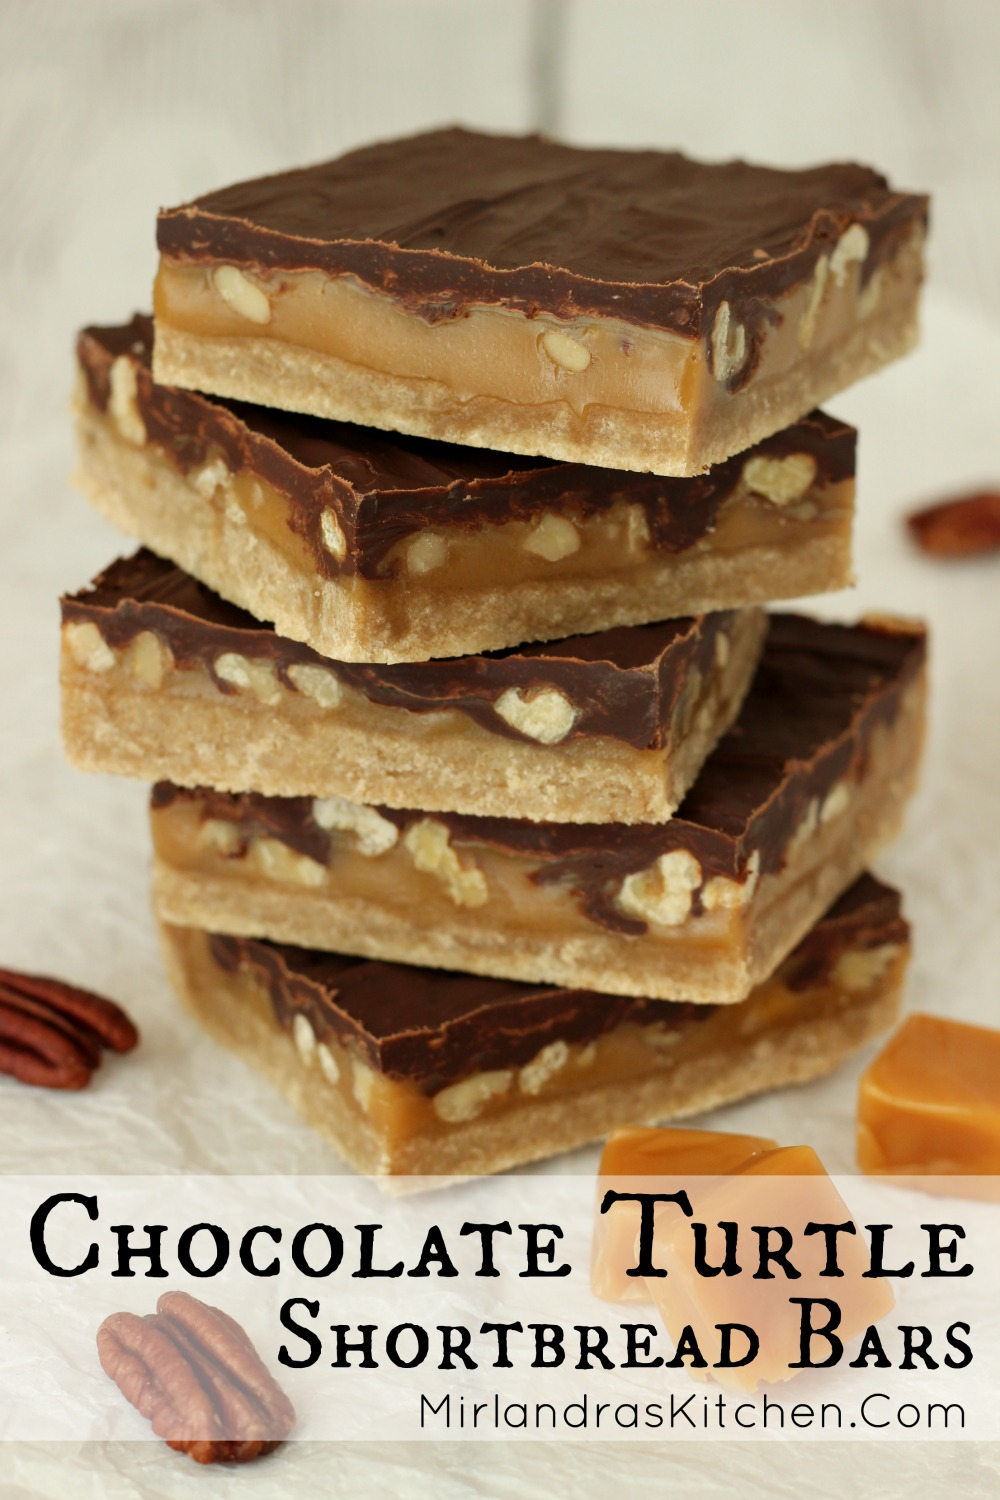 These decadent Chocolate Turtle Shortbread Bars are decadent to the extreme but not hard to put together. The bars are made from rich buttery shortbread and gooey caramel full of pecans or walnuts all slathered with a thick layer of chocolate. Am I speaking your language yet? You need a pan of these!